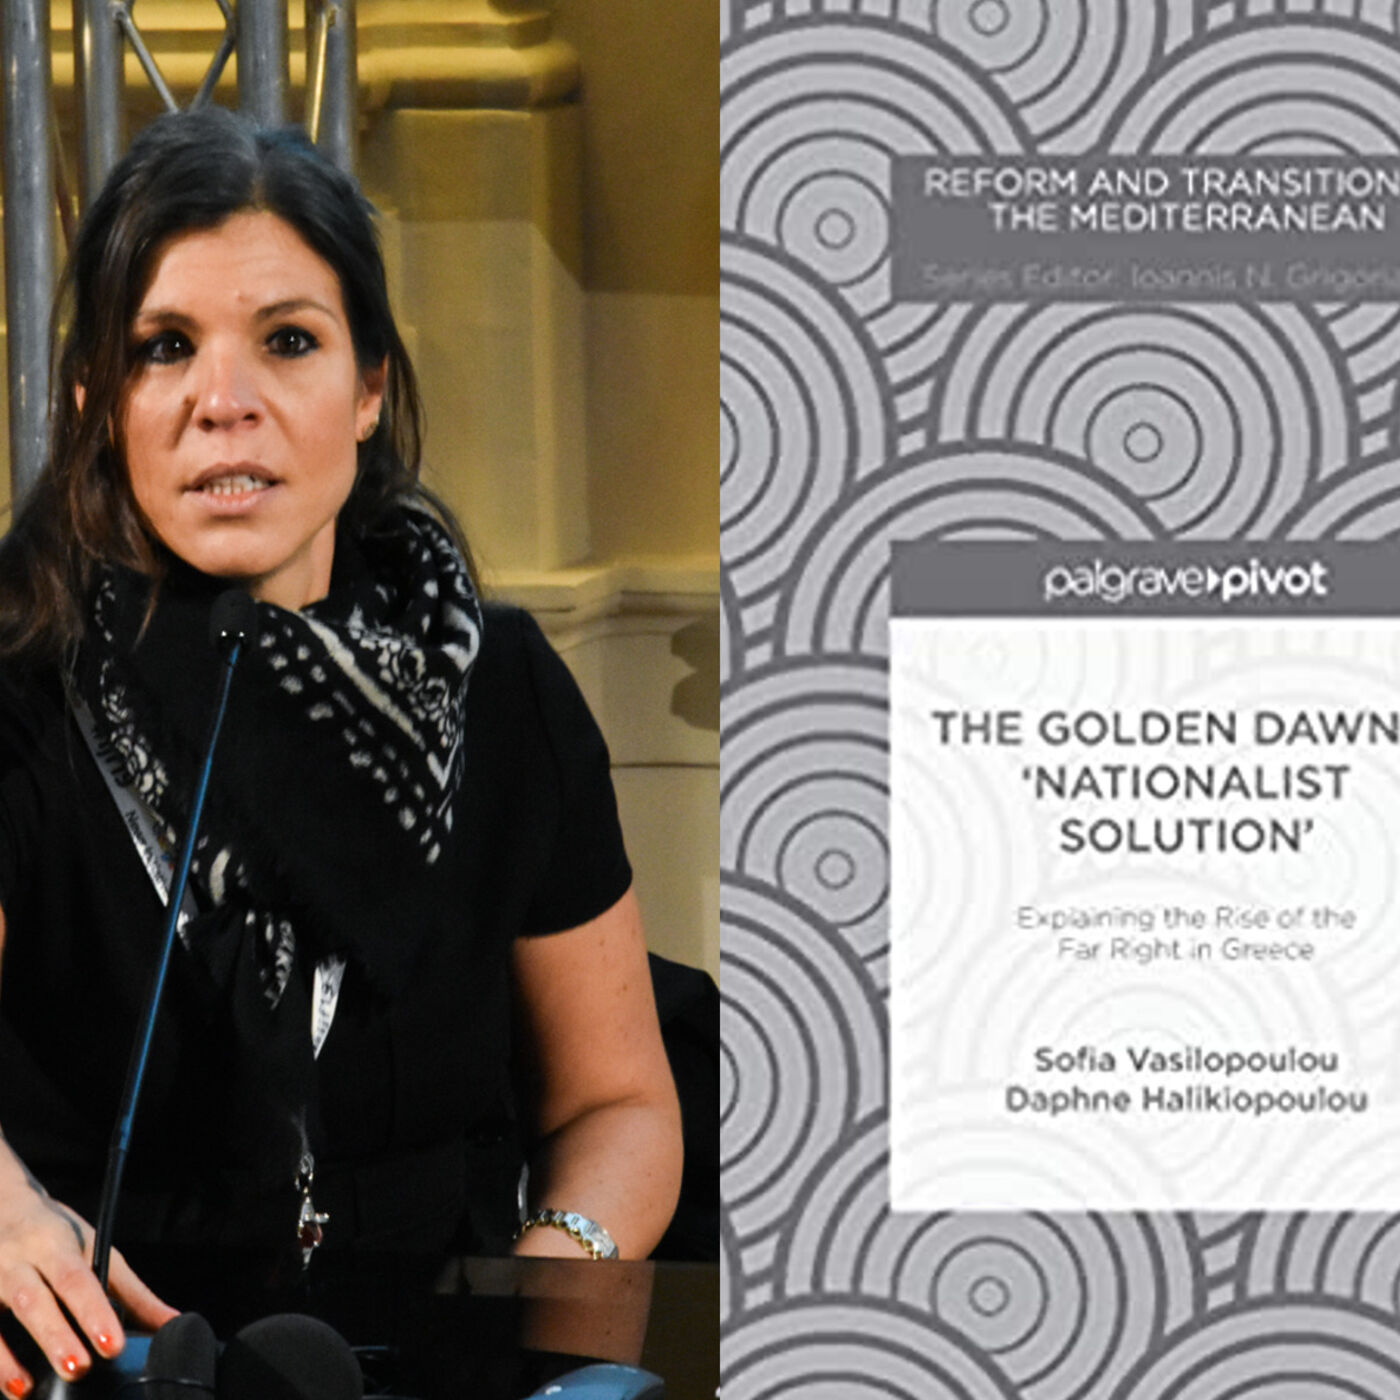 18. Daphne Halikiopoulou on Golden Dawn and Far Right Politics in Greece